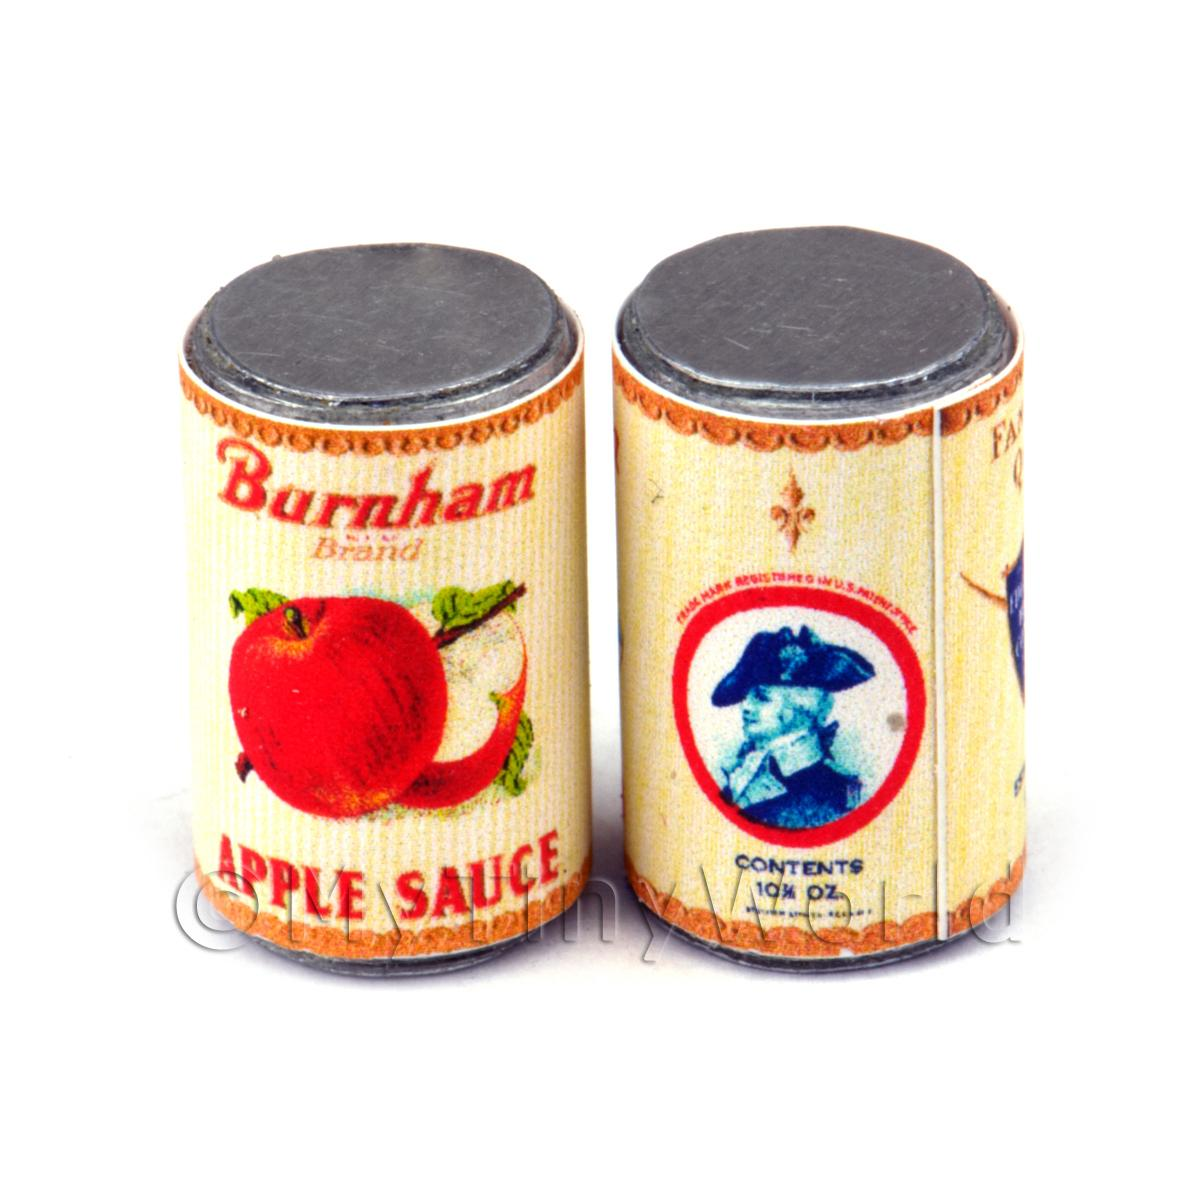 Dolls House Miniature Burnam Apple Sauce Can (1930s)